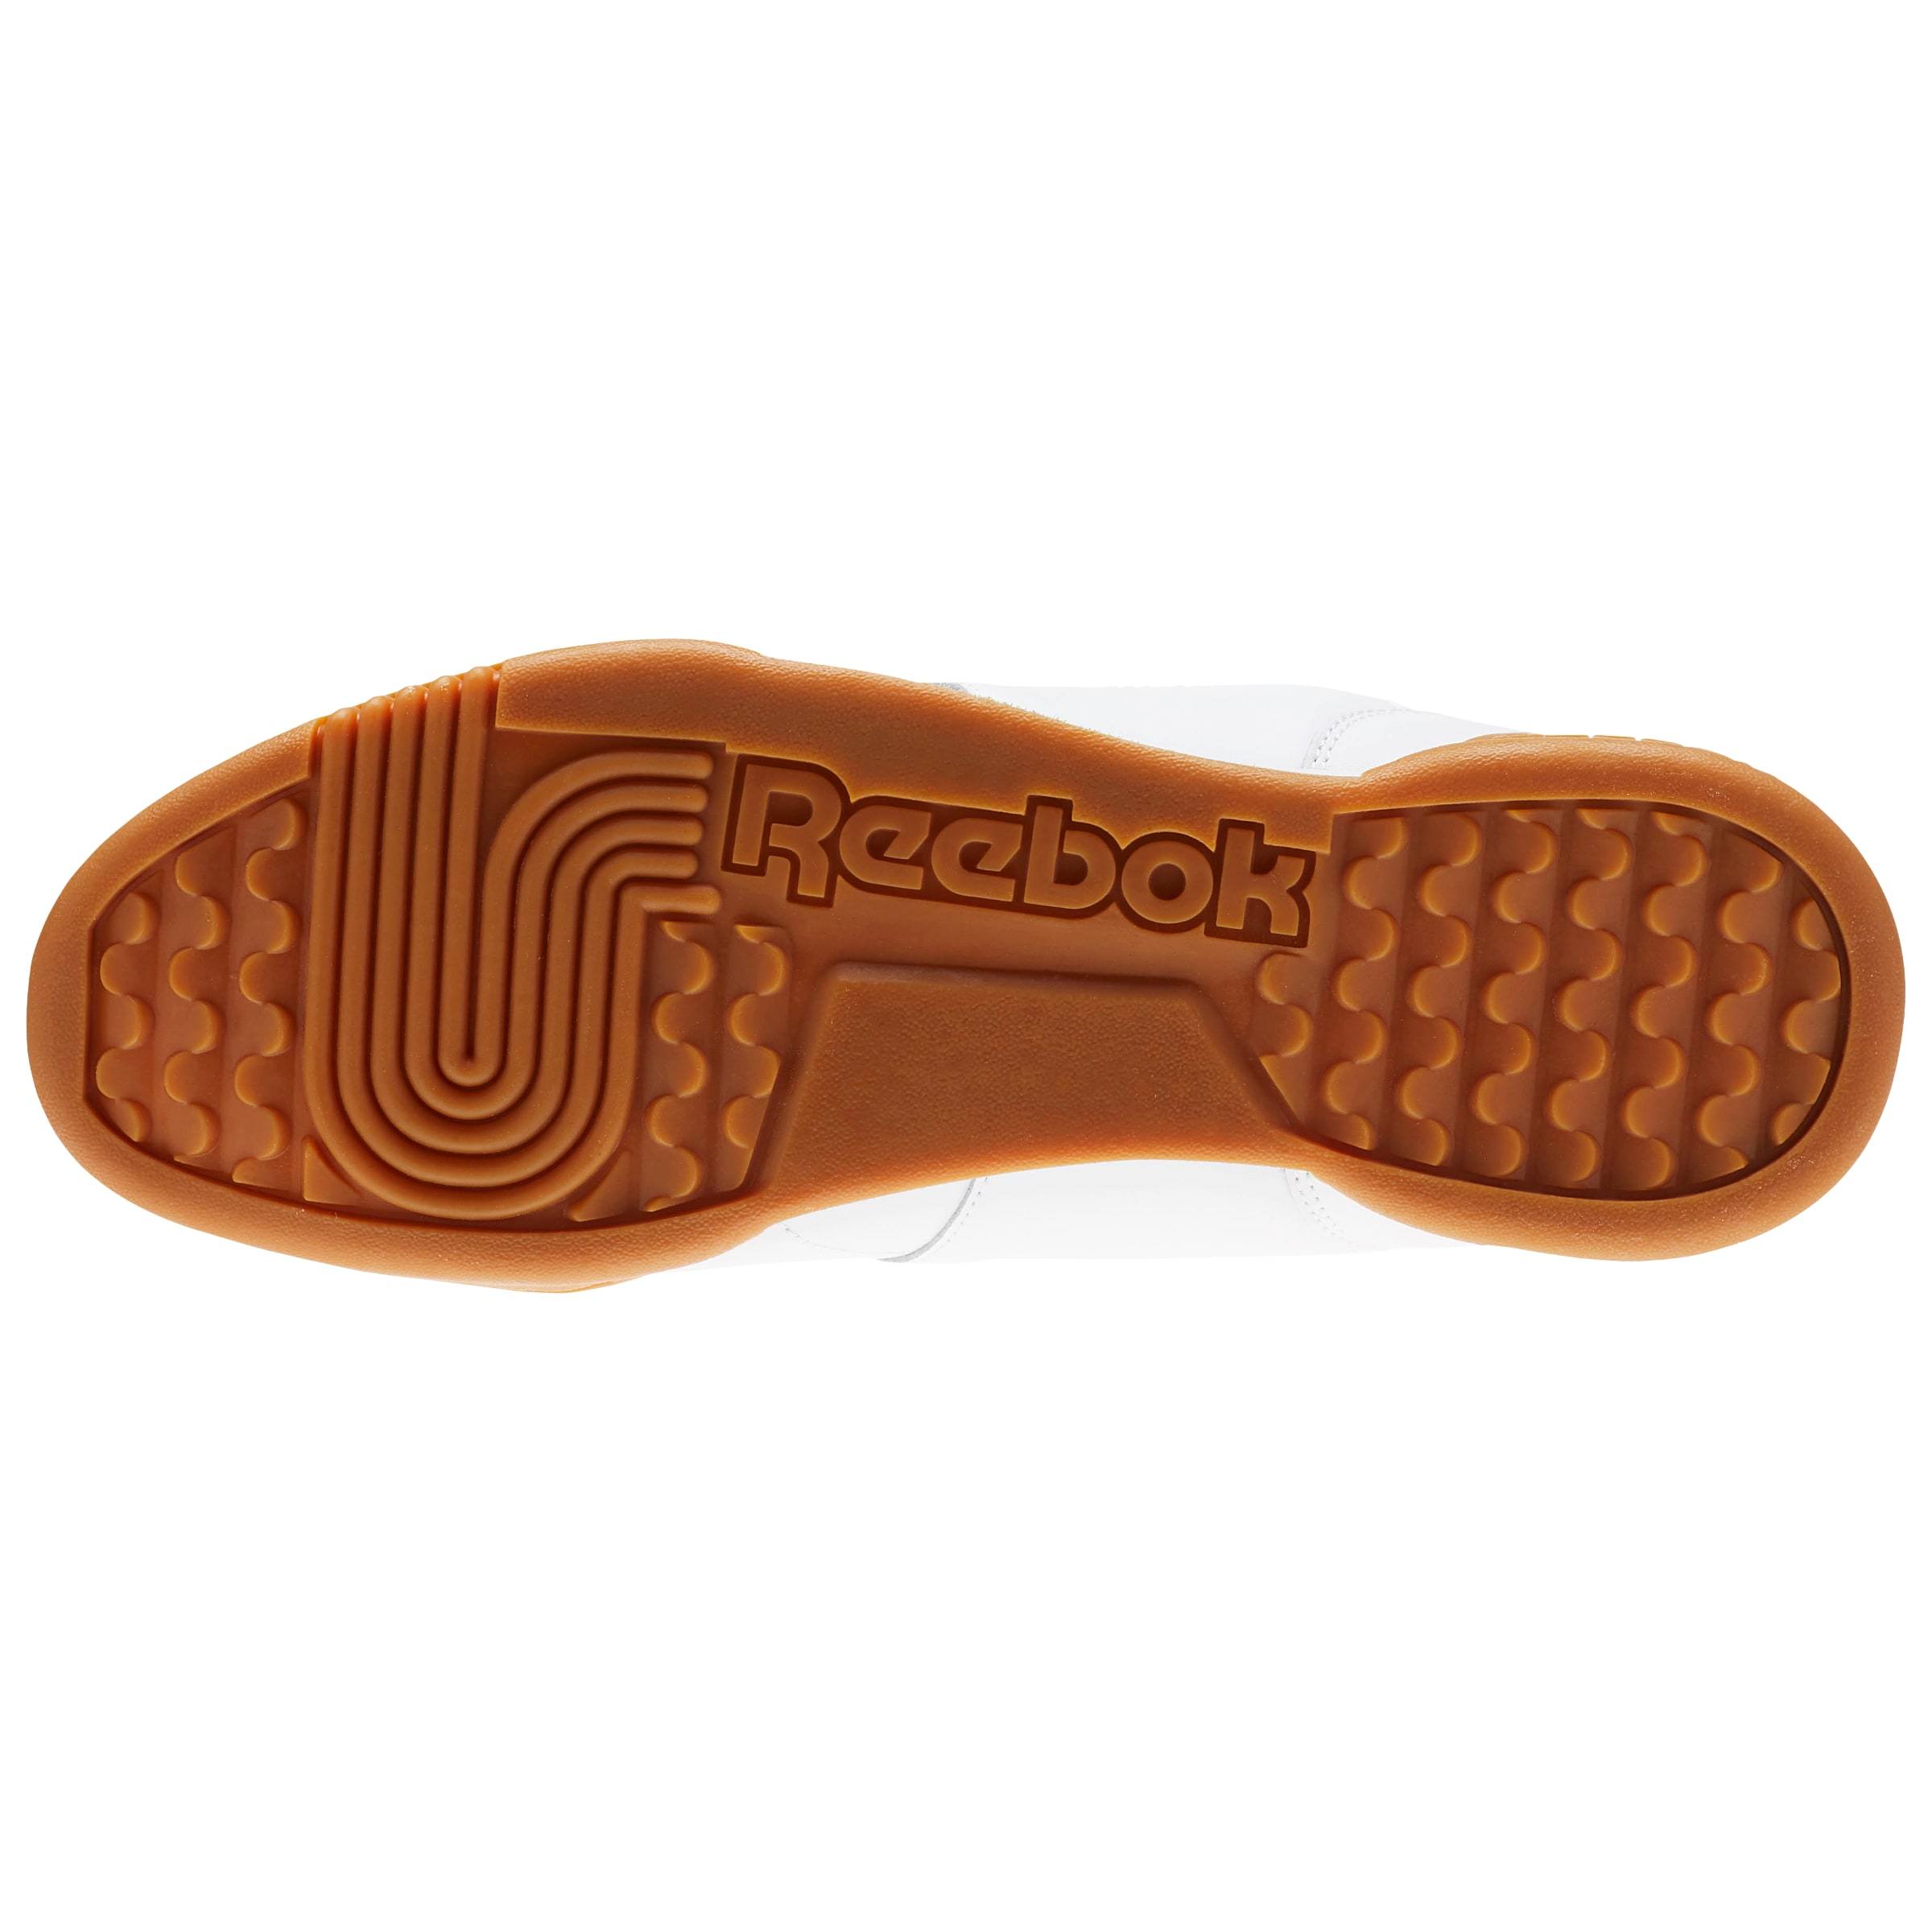 CognacWeiß Classic In Reebok Sneaker 'workout Plus' 4L5ARj